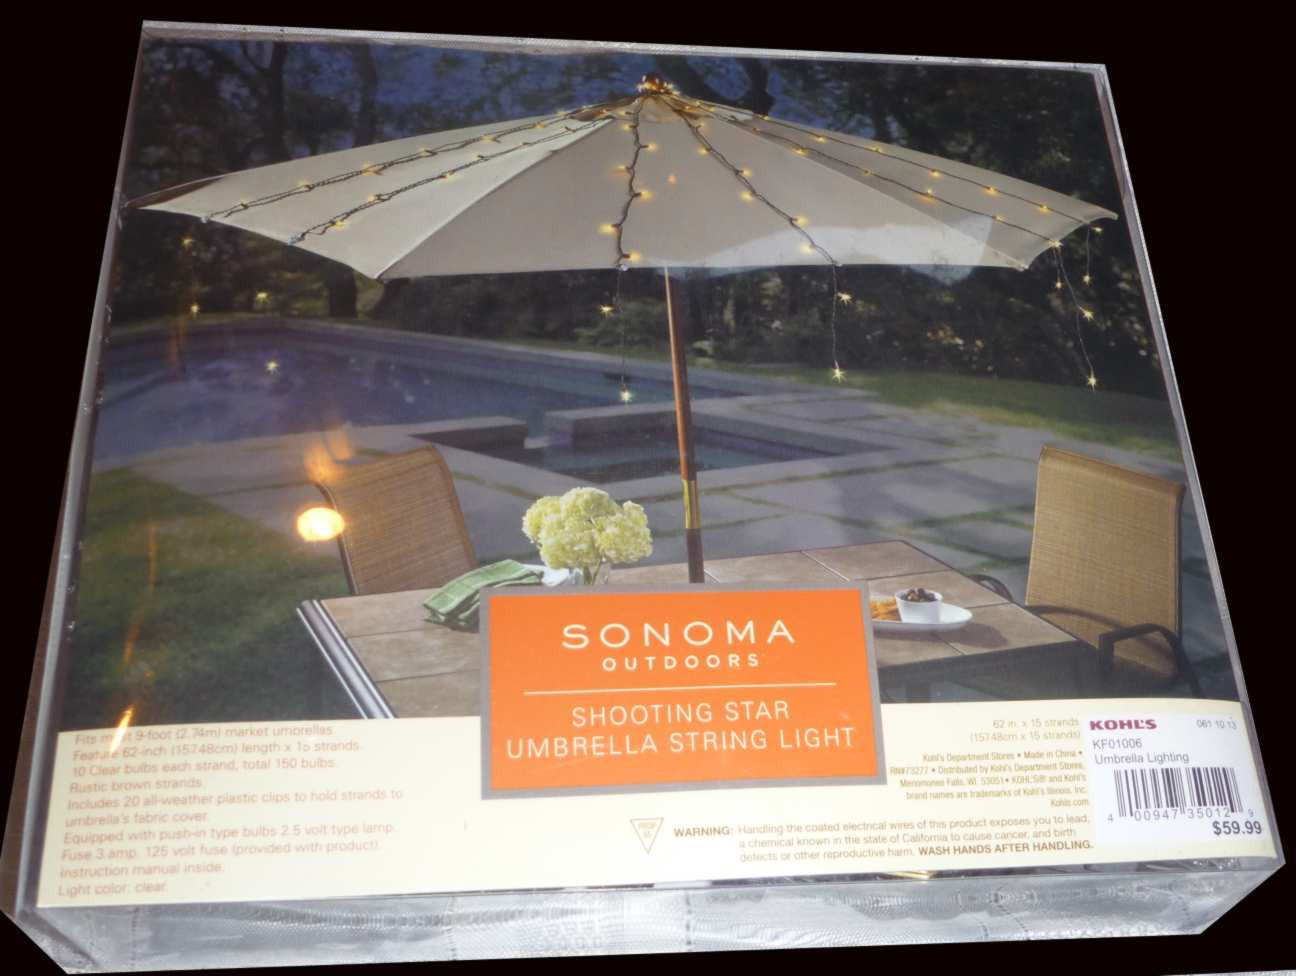 Umbrella String Lights-$60 SONOMA Outdoor Shooting Star Dorm Lighting-Bed Canopy image 6